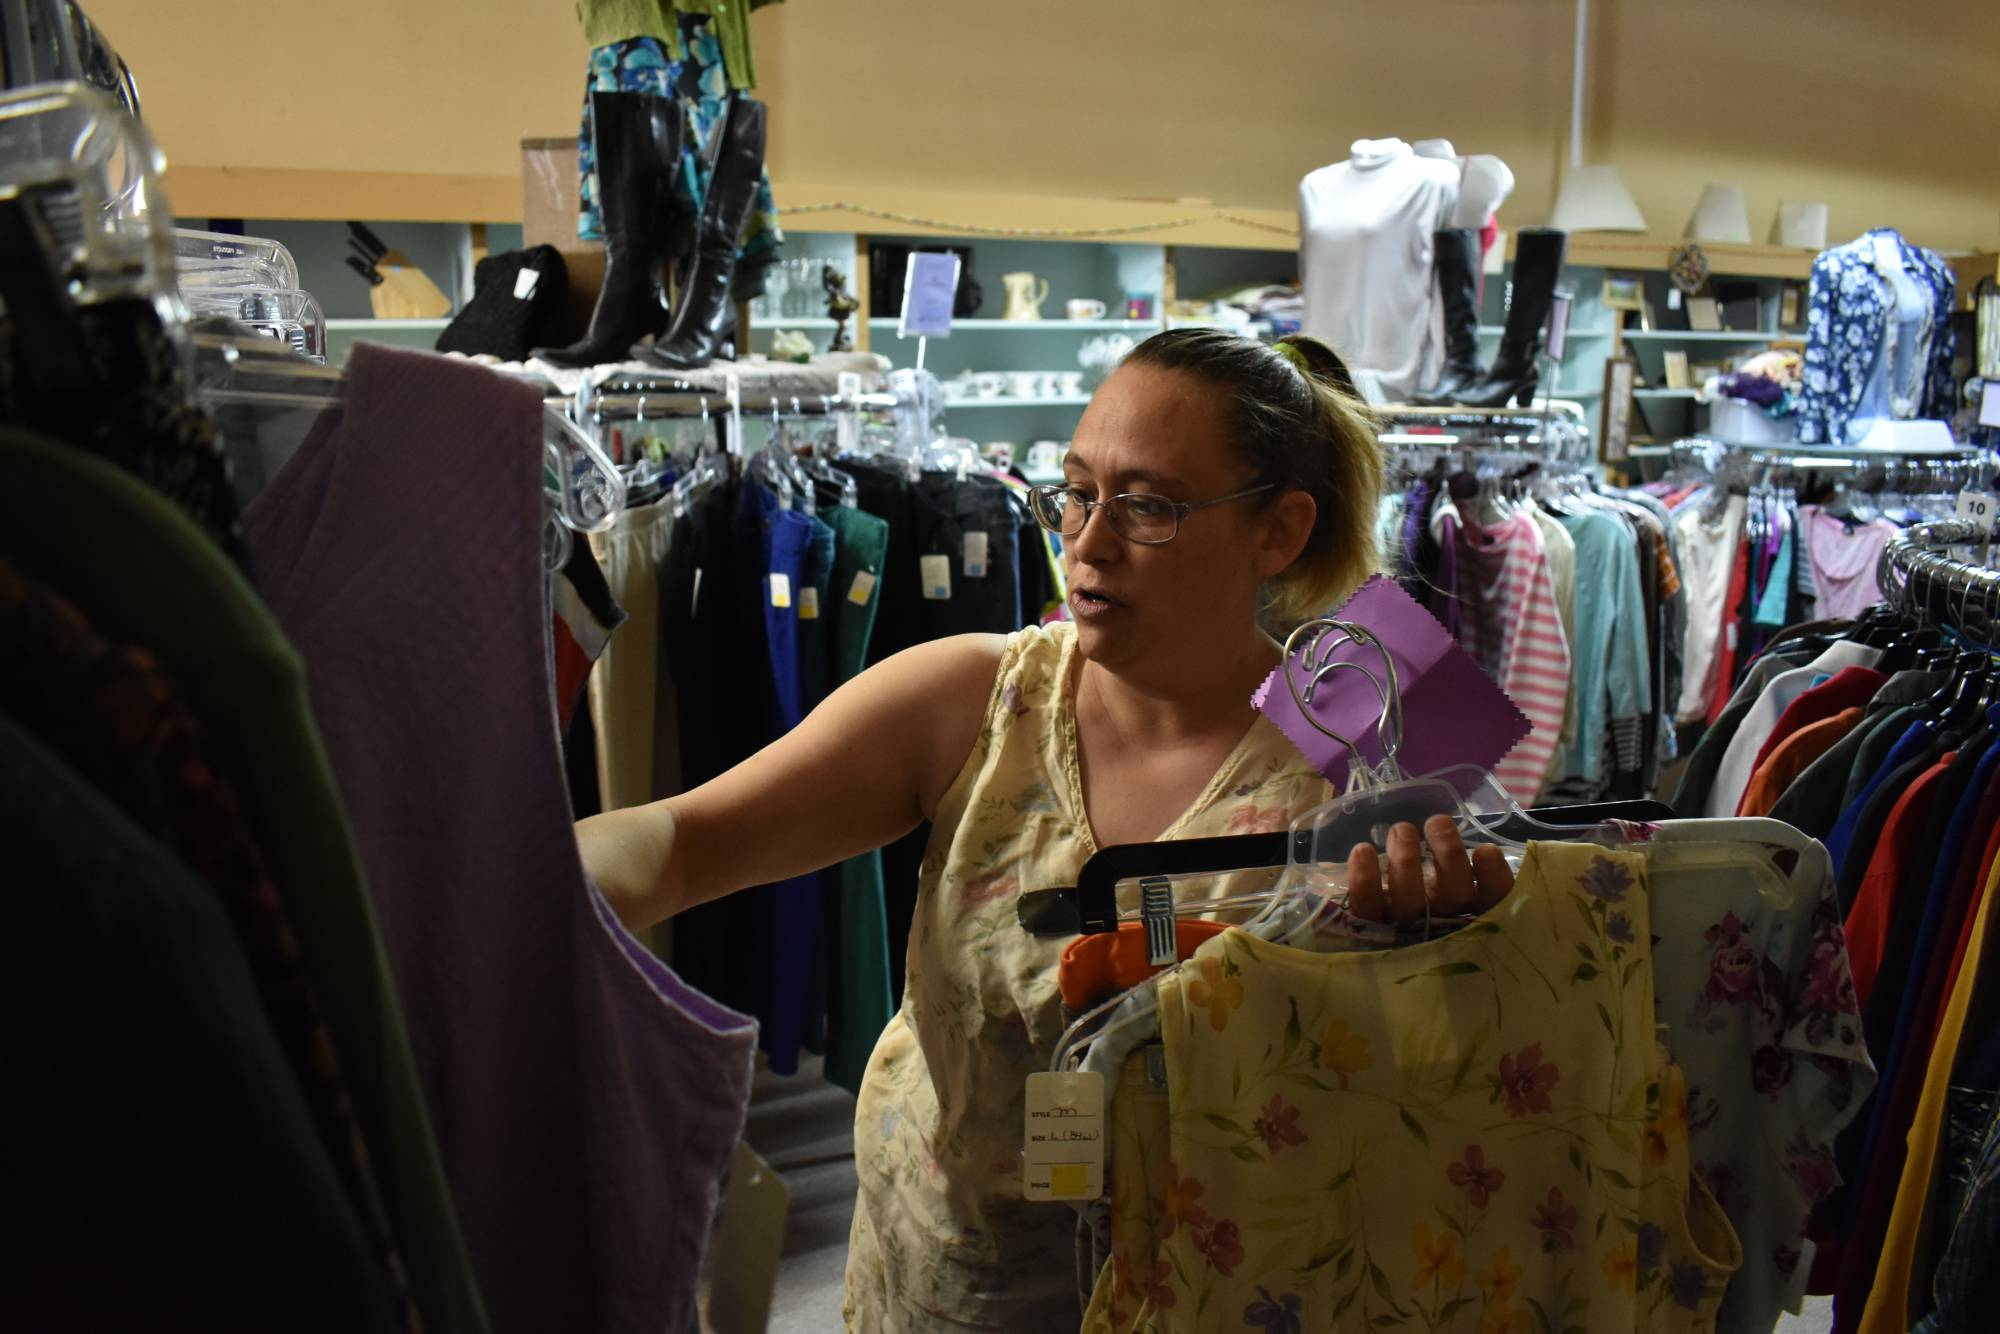 Shannon Thompson looks through clothing items at the Northern Treasure thrift store last Monday in Roundup, Montana. | AP